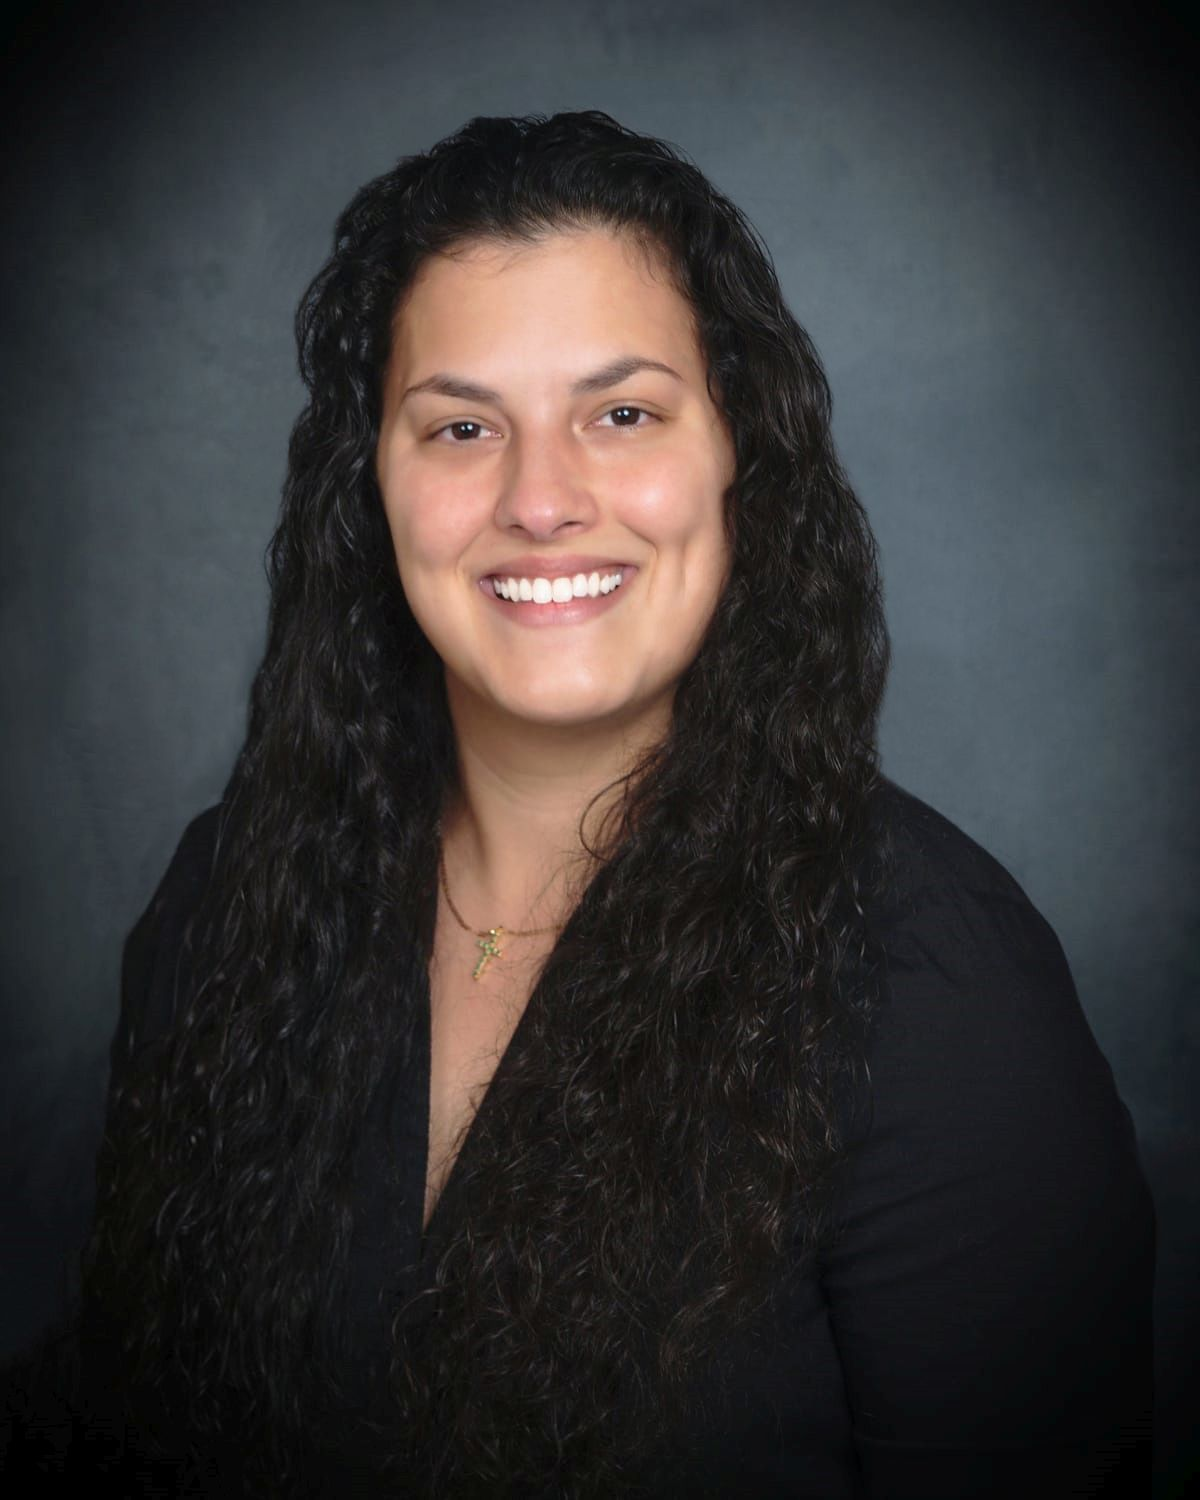 ALEXA RAE OLIVEIRA  Your Financial Professional & Insurance Agent